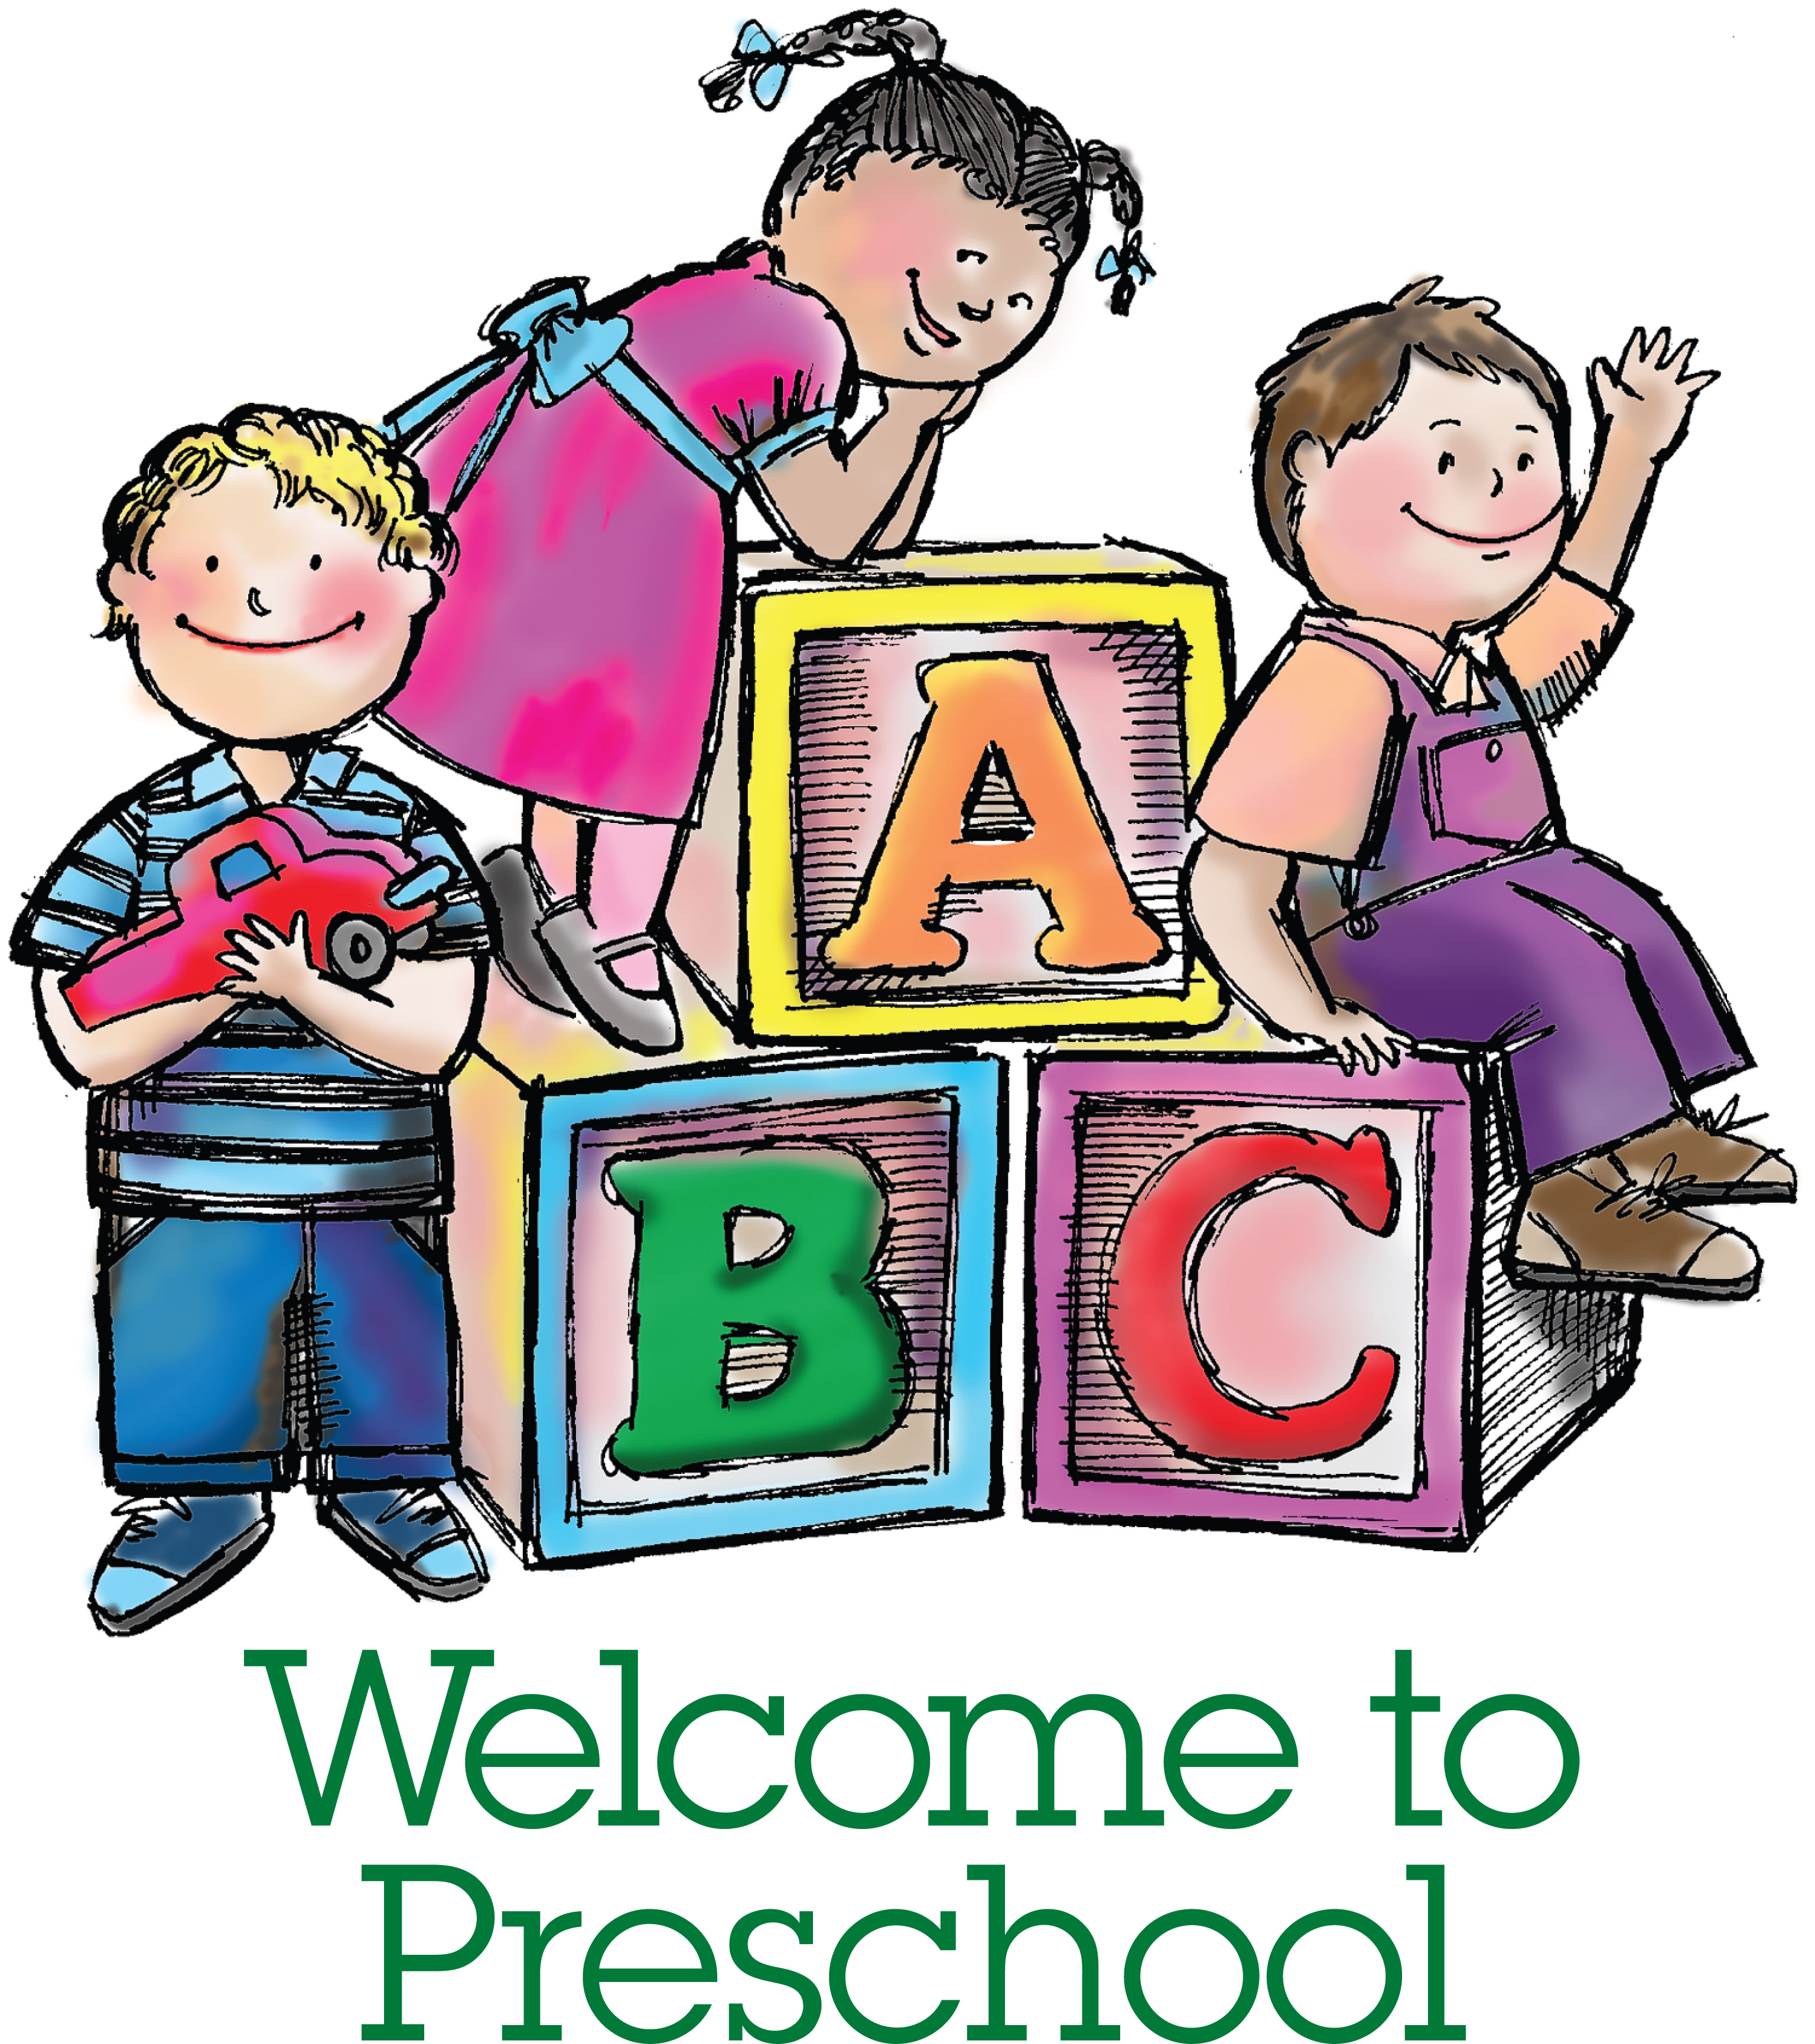 Welcome To Preschool Clipart   Clipart Panda   Free Clipart Images